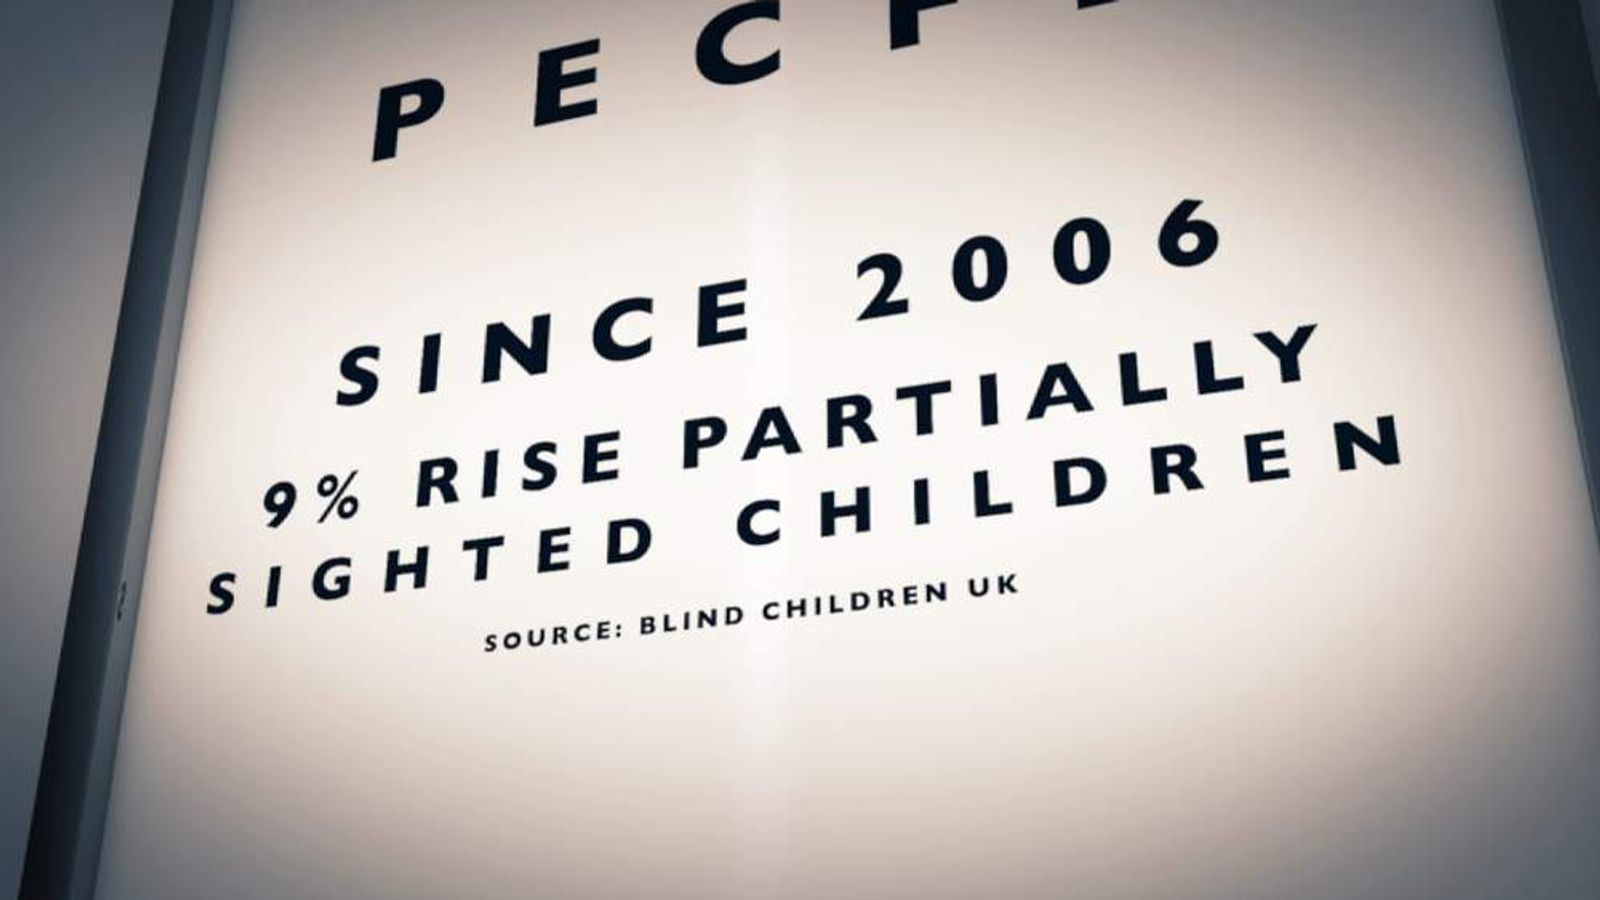 9% rise in partially sighted children